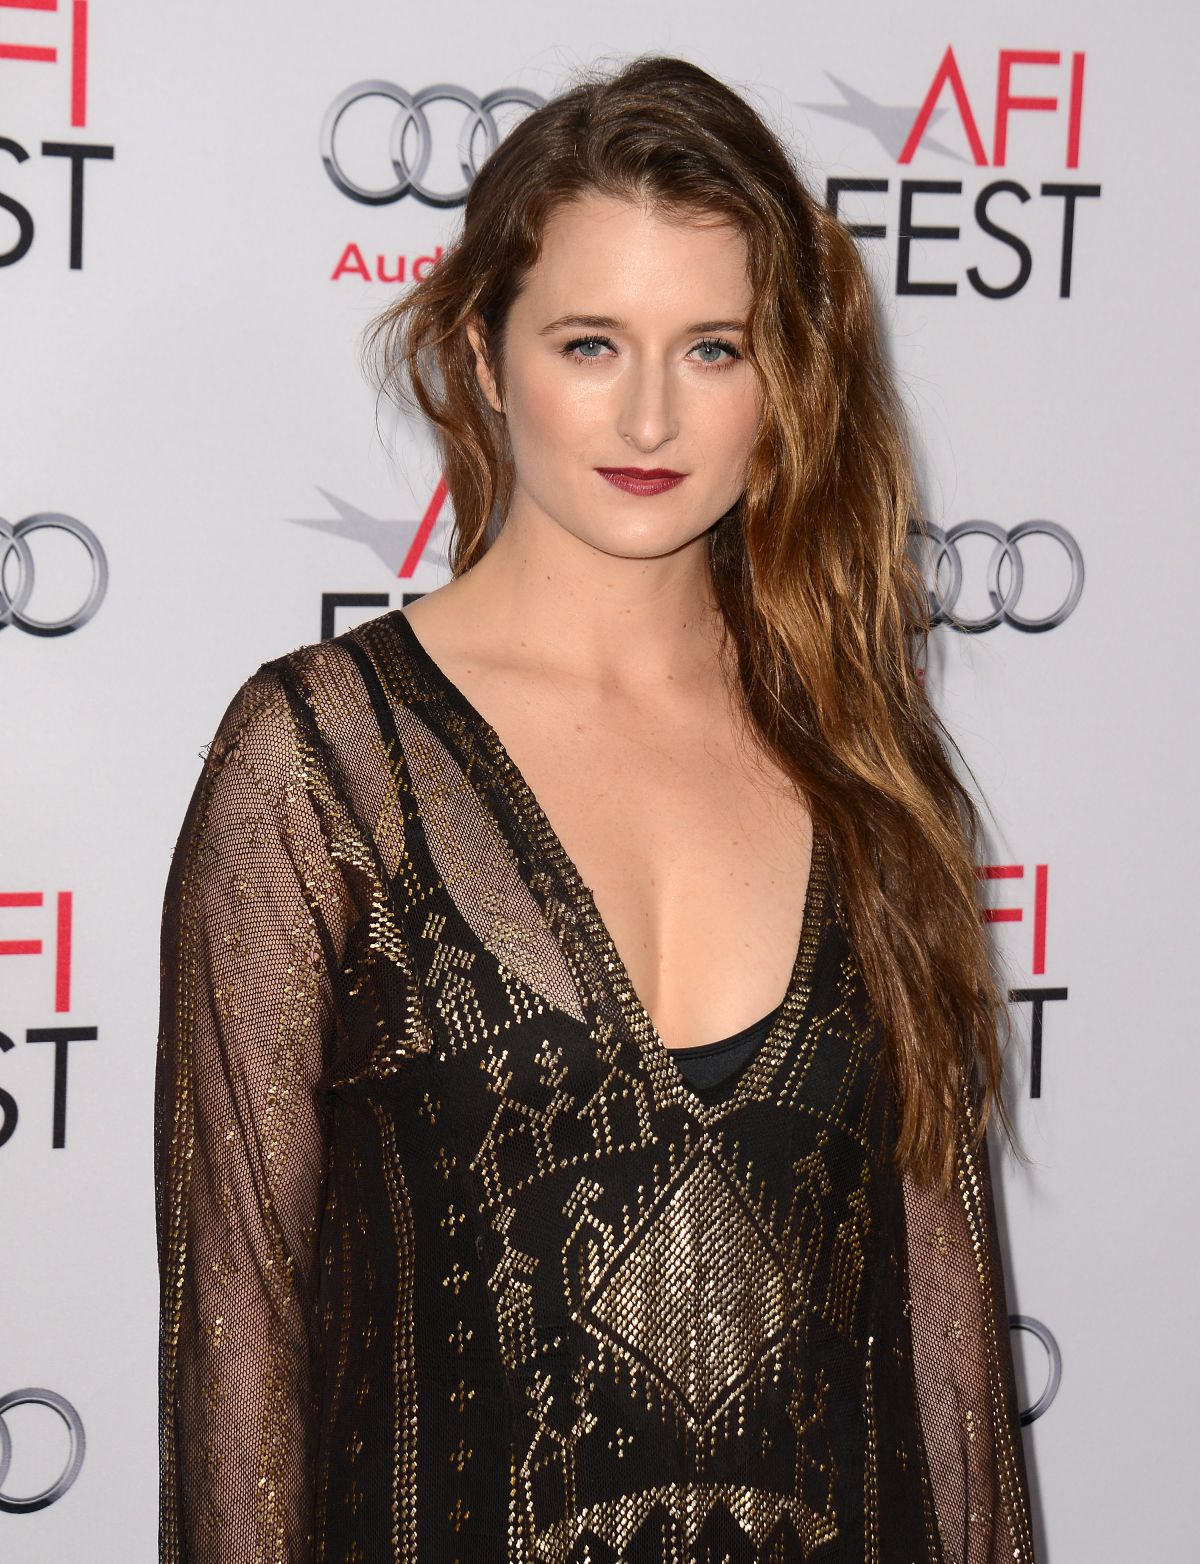 Grace Gummer - Biography, Age, Instagram, Tattos, Family and Life Stroy